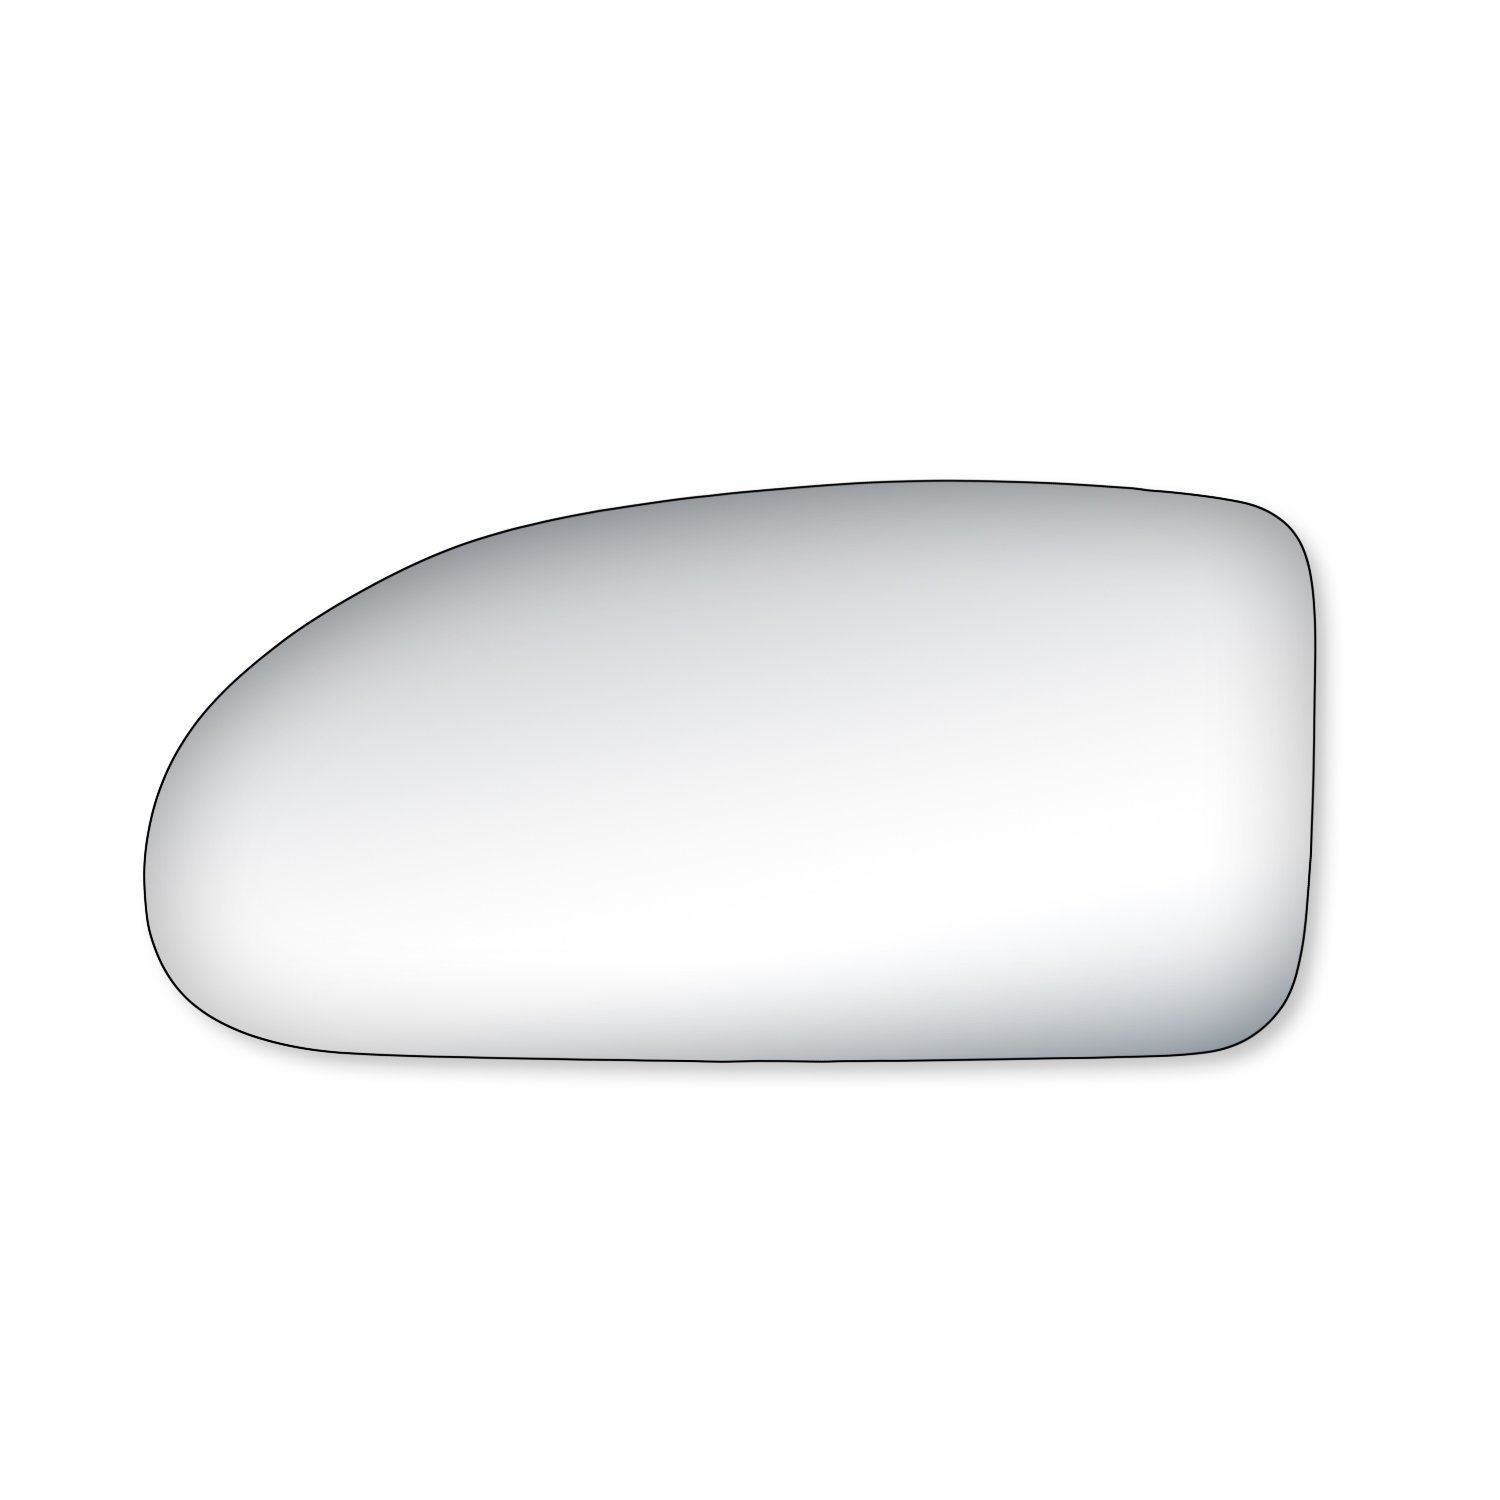 Fit System 99151 Ford Focus Driver/Passenger Side Replacement Mirror Glass